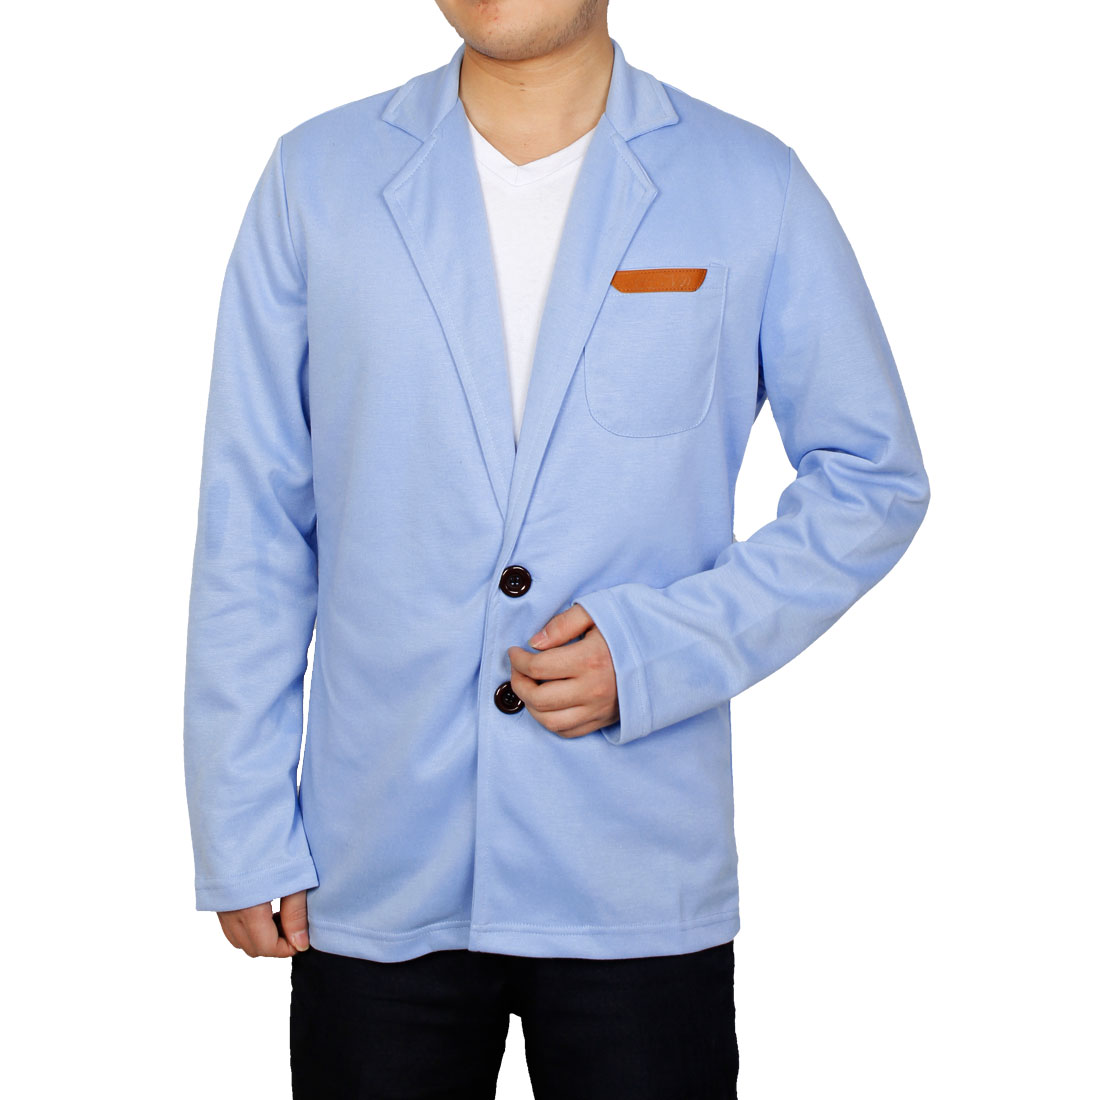 Men Button Closure Long Sleeve Blazer Light Blue M